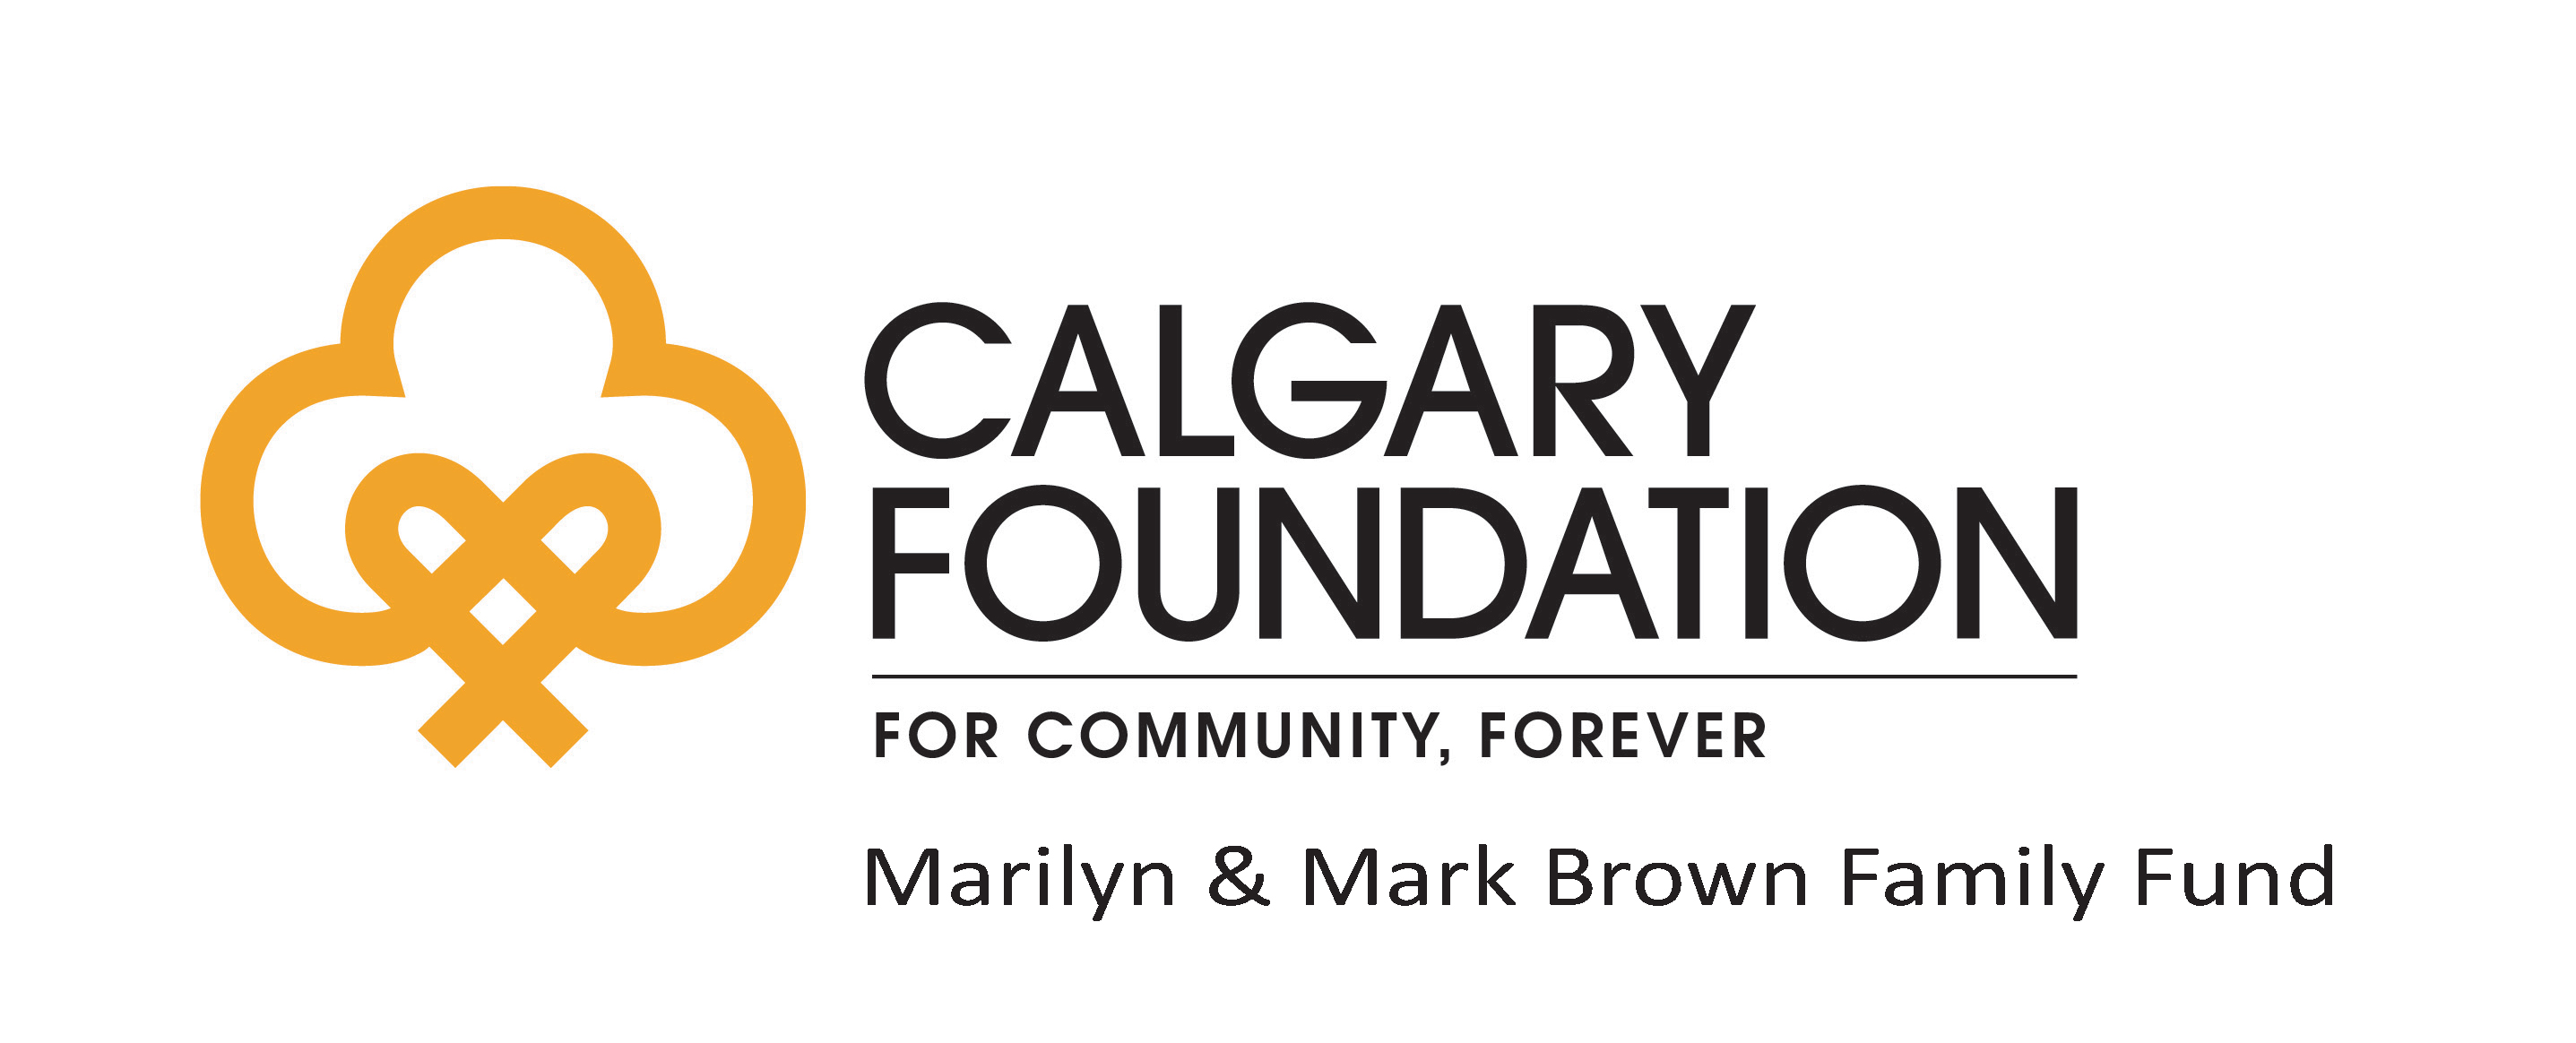 Calgary Foundation – Marilyn & Mark Brown Family Fund